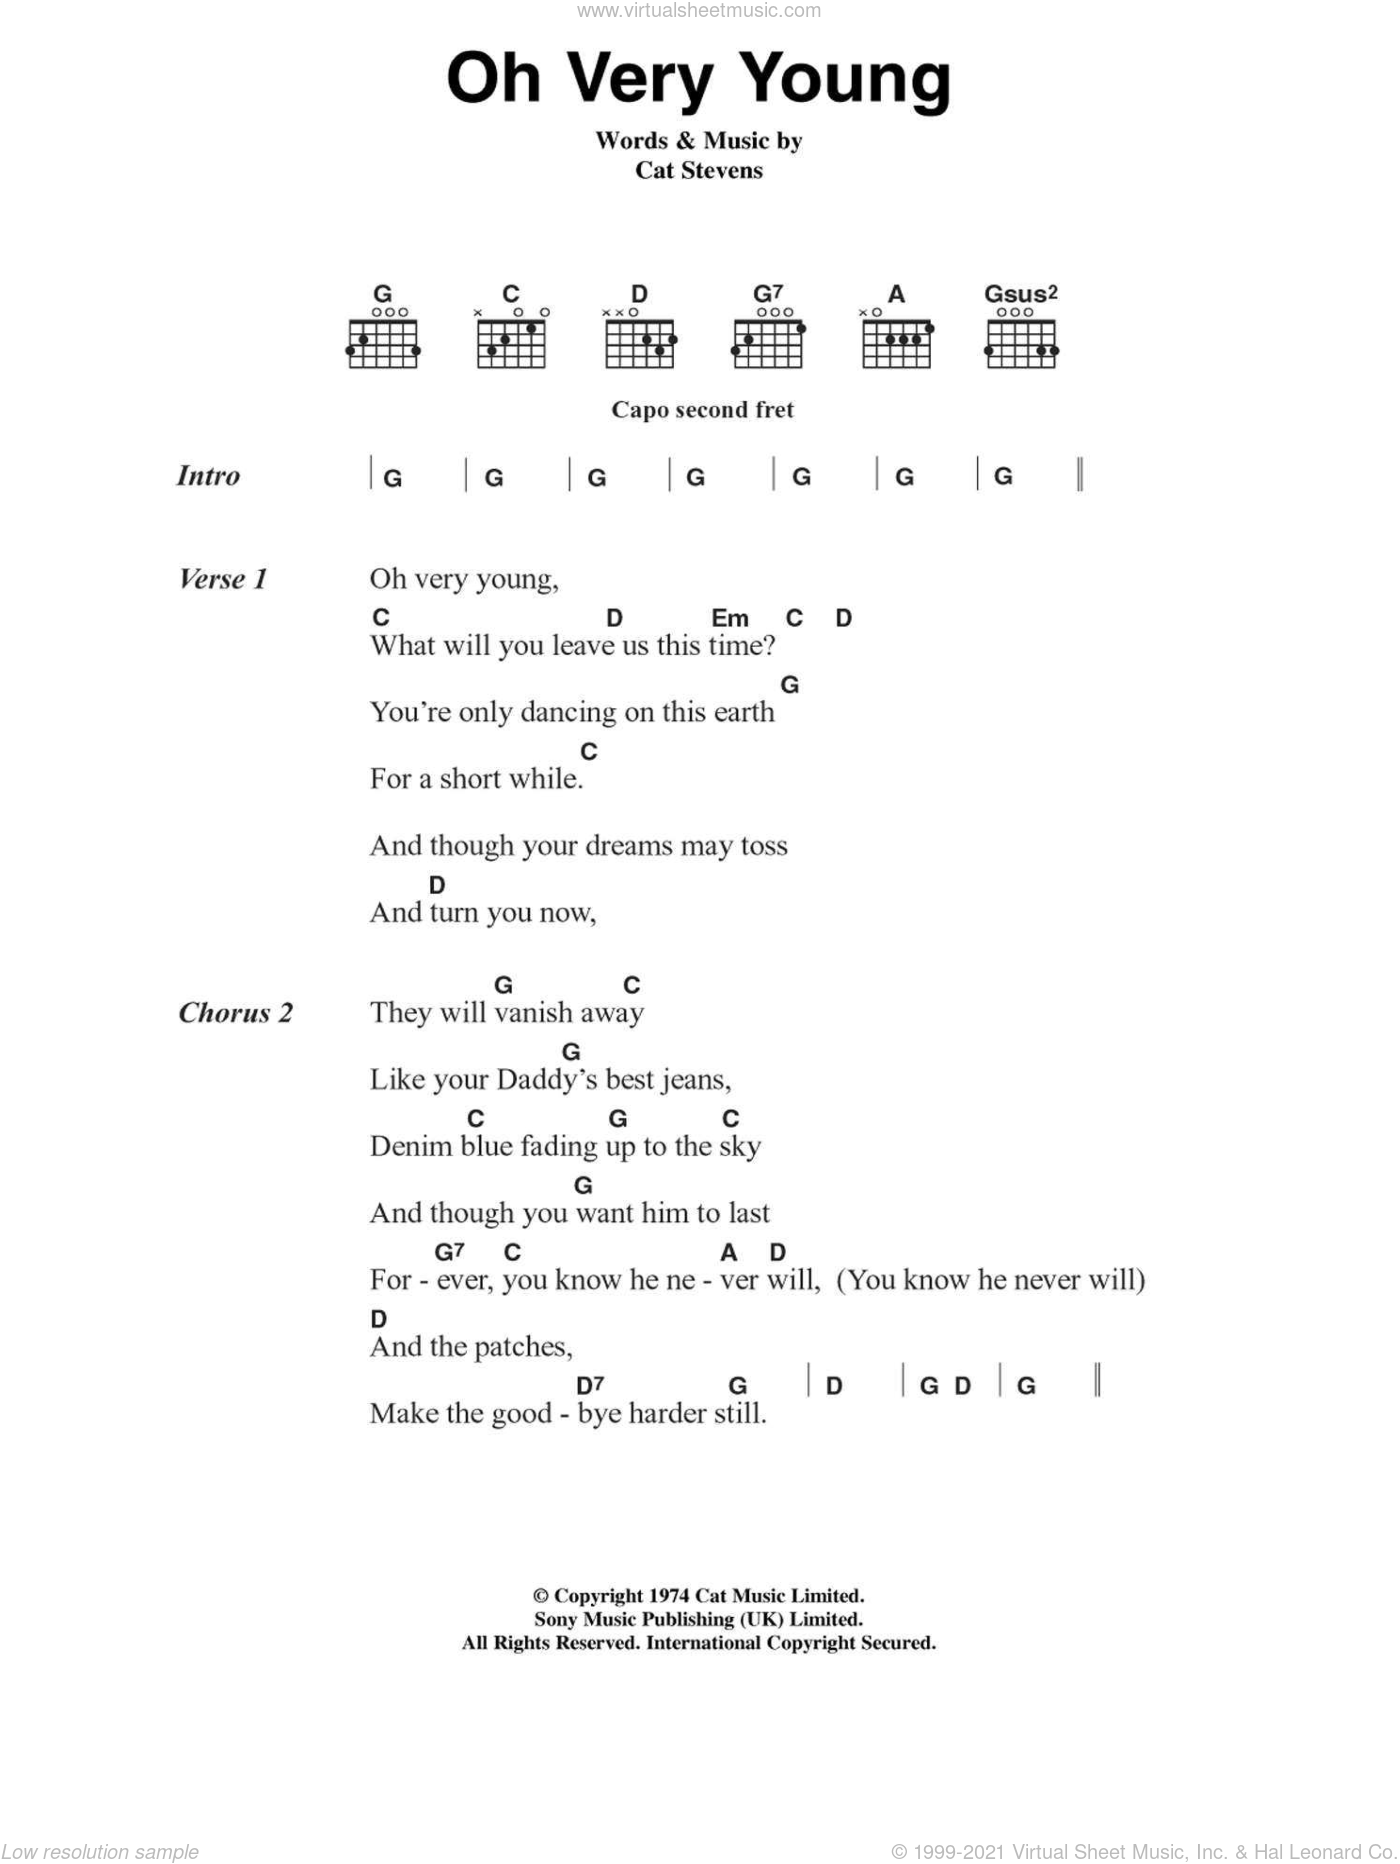 Oh Very Young sheet music for guitar (chords, lyrics, melody) by Cat Stevens